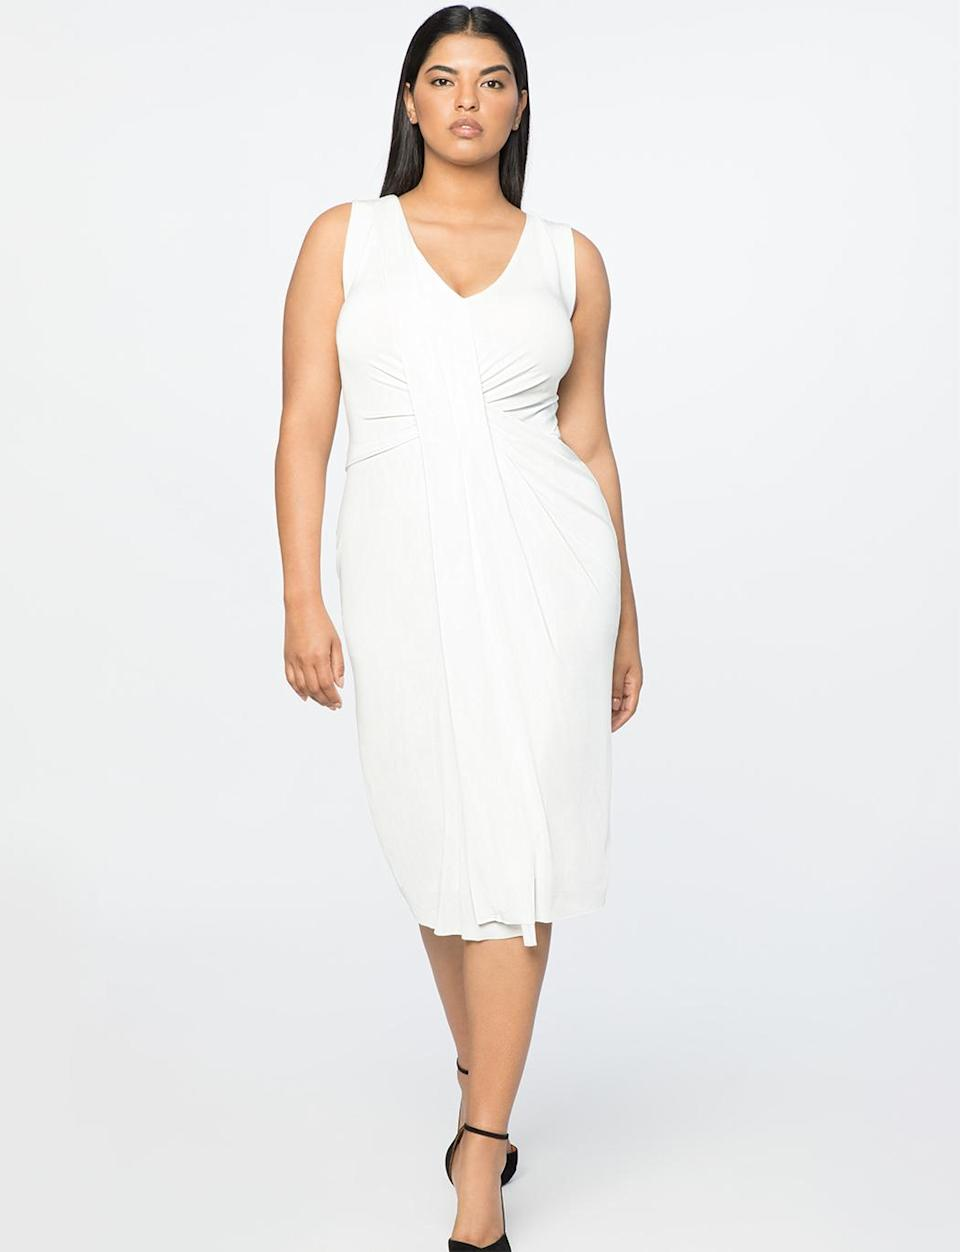 """<p>This elegant dress is simple in nature but so versatile. Add a black blazer and black boots for work, or throw on heels and tear-drop earrings to go out at night.<br>Drape-front V-neck dress in Chalk , $100, <a rel=""""nofollow noopener"""" href=""""https://fave.co/2zkGB4F"""" target=""""_blank"""" data-ylk=""""slk:eloquii.com"""" class=""""link rapid-noclick-resp"""">eloquii.com</a> </p>"""